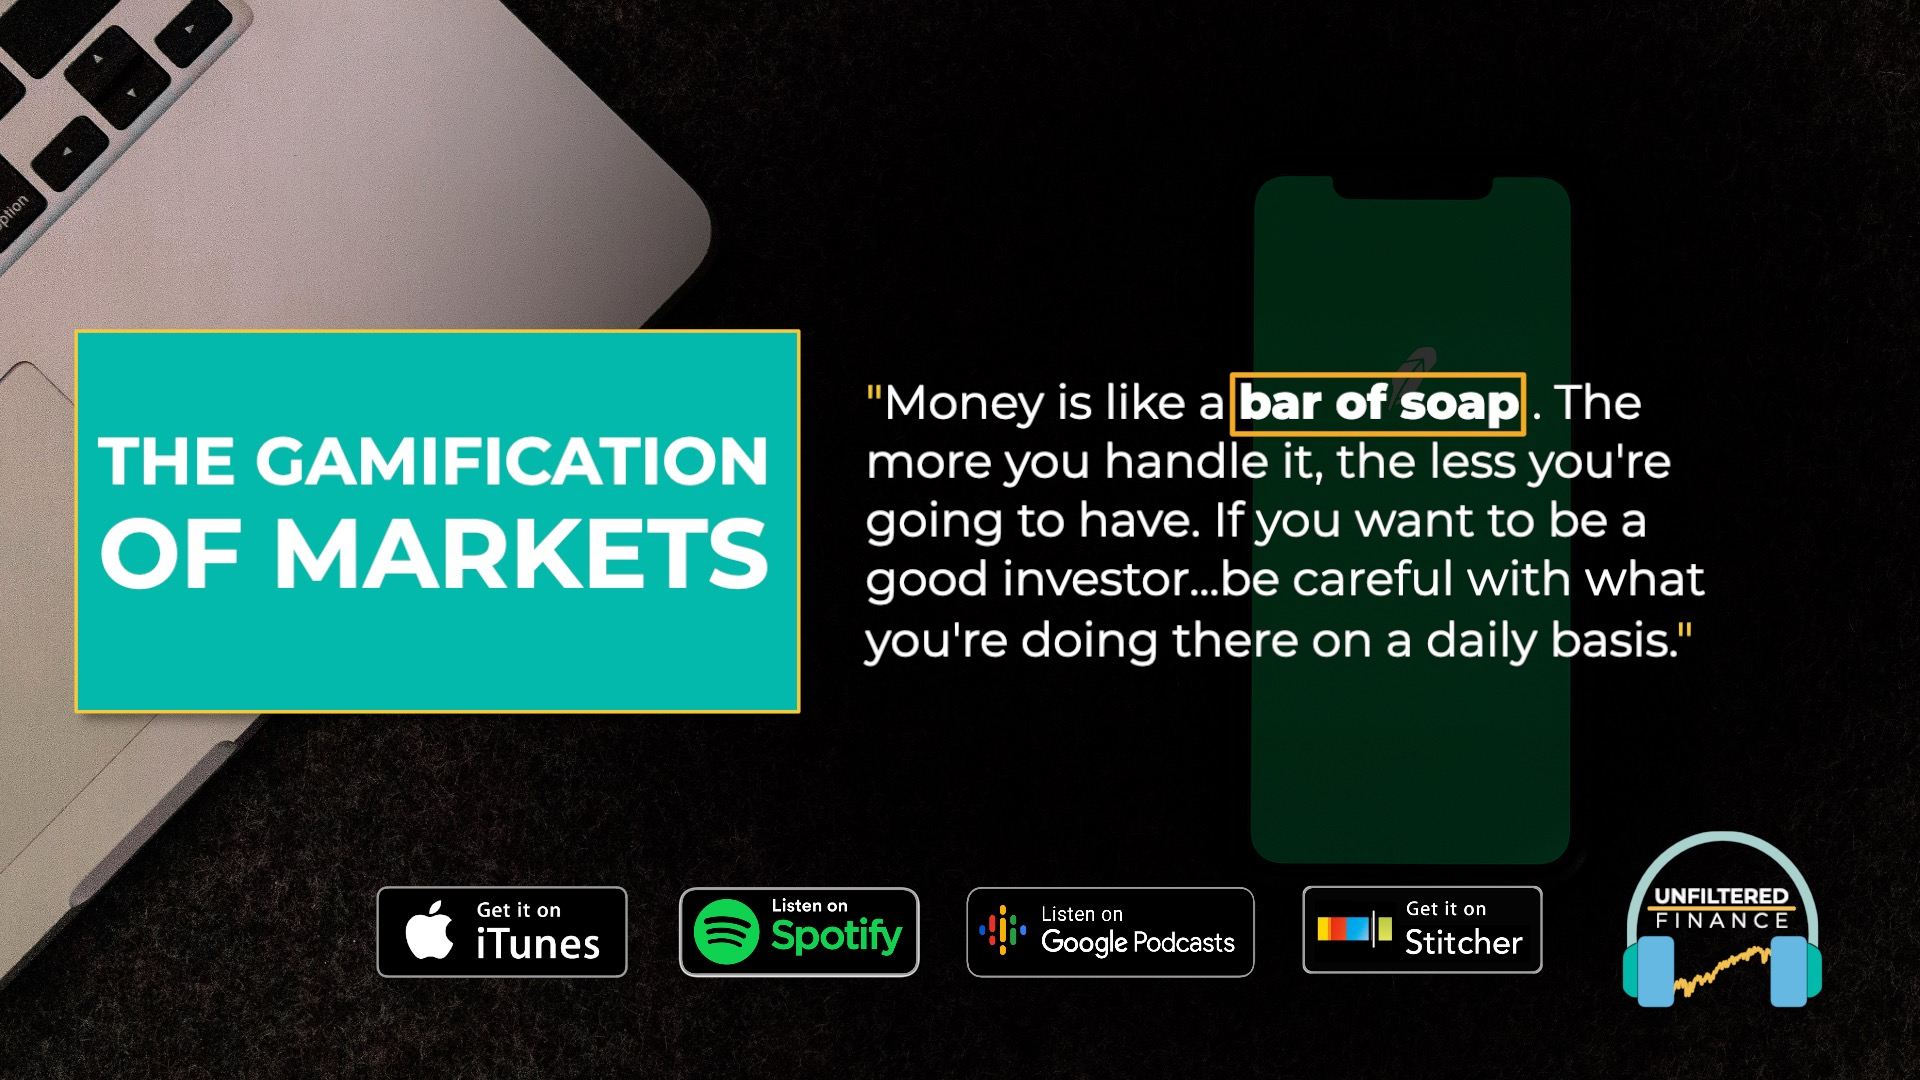 HD Pic - Gamification of Markets-2